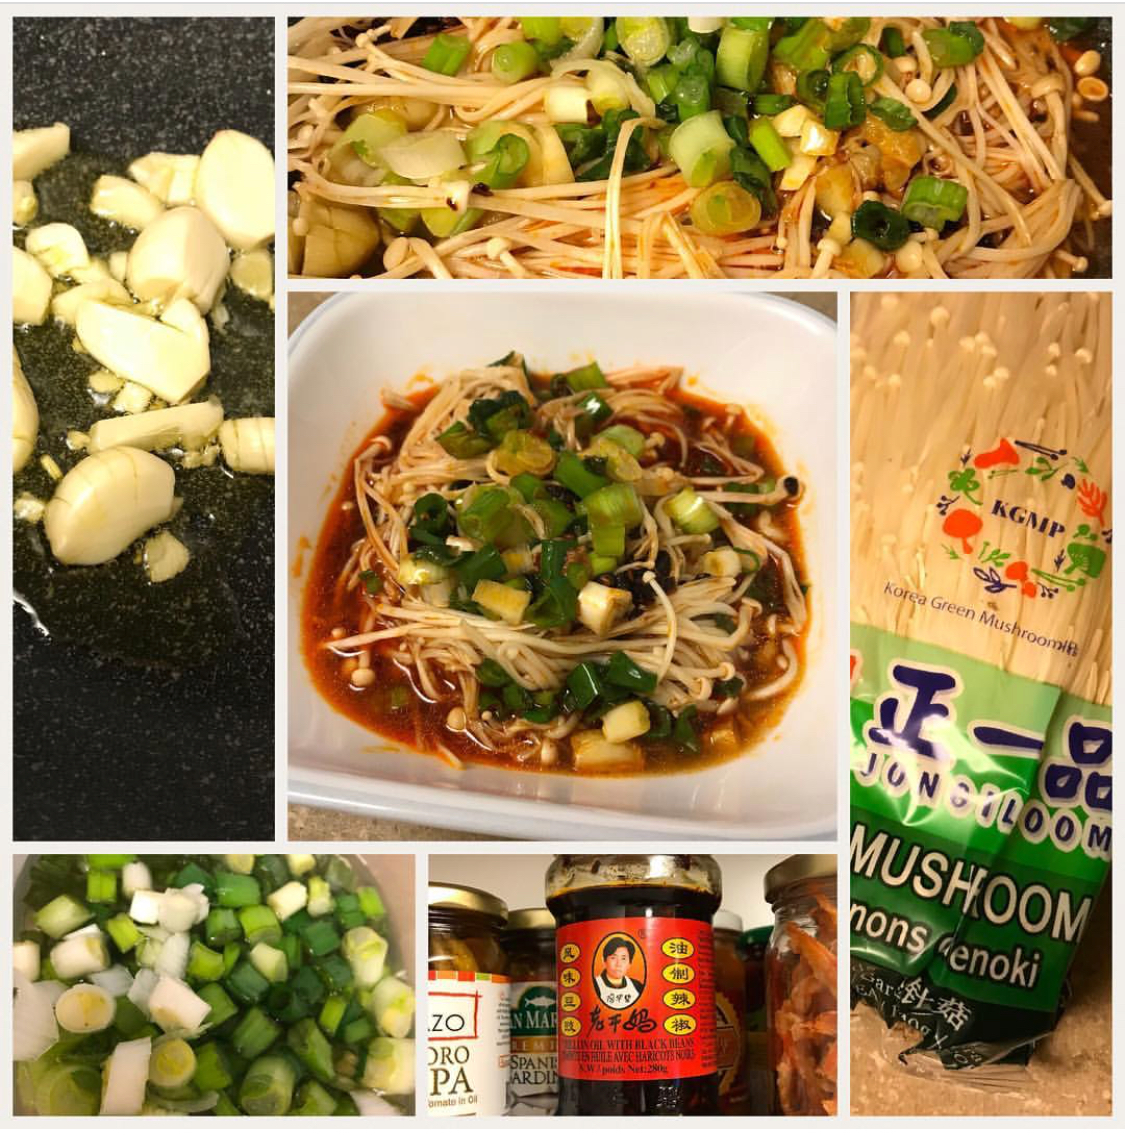 Stir fried Enoki with garlic, scallions and chilli black bean sauce